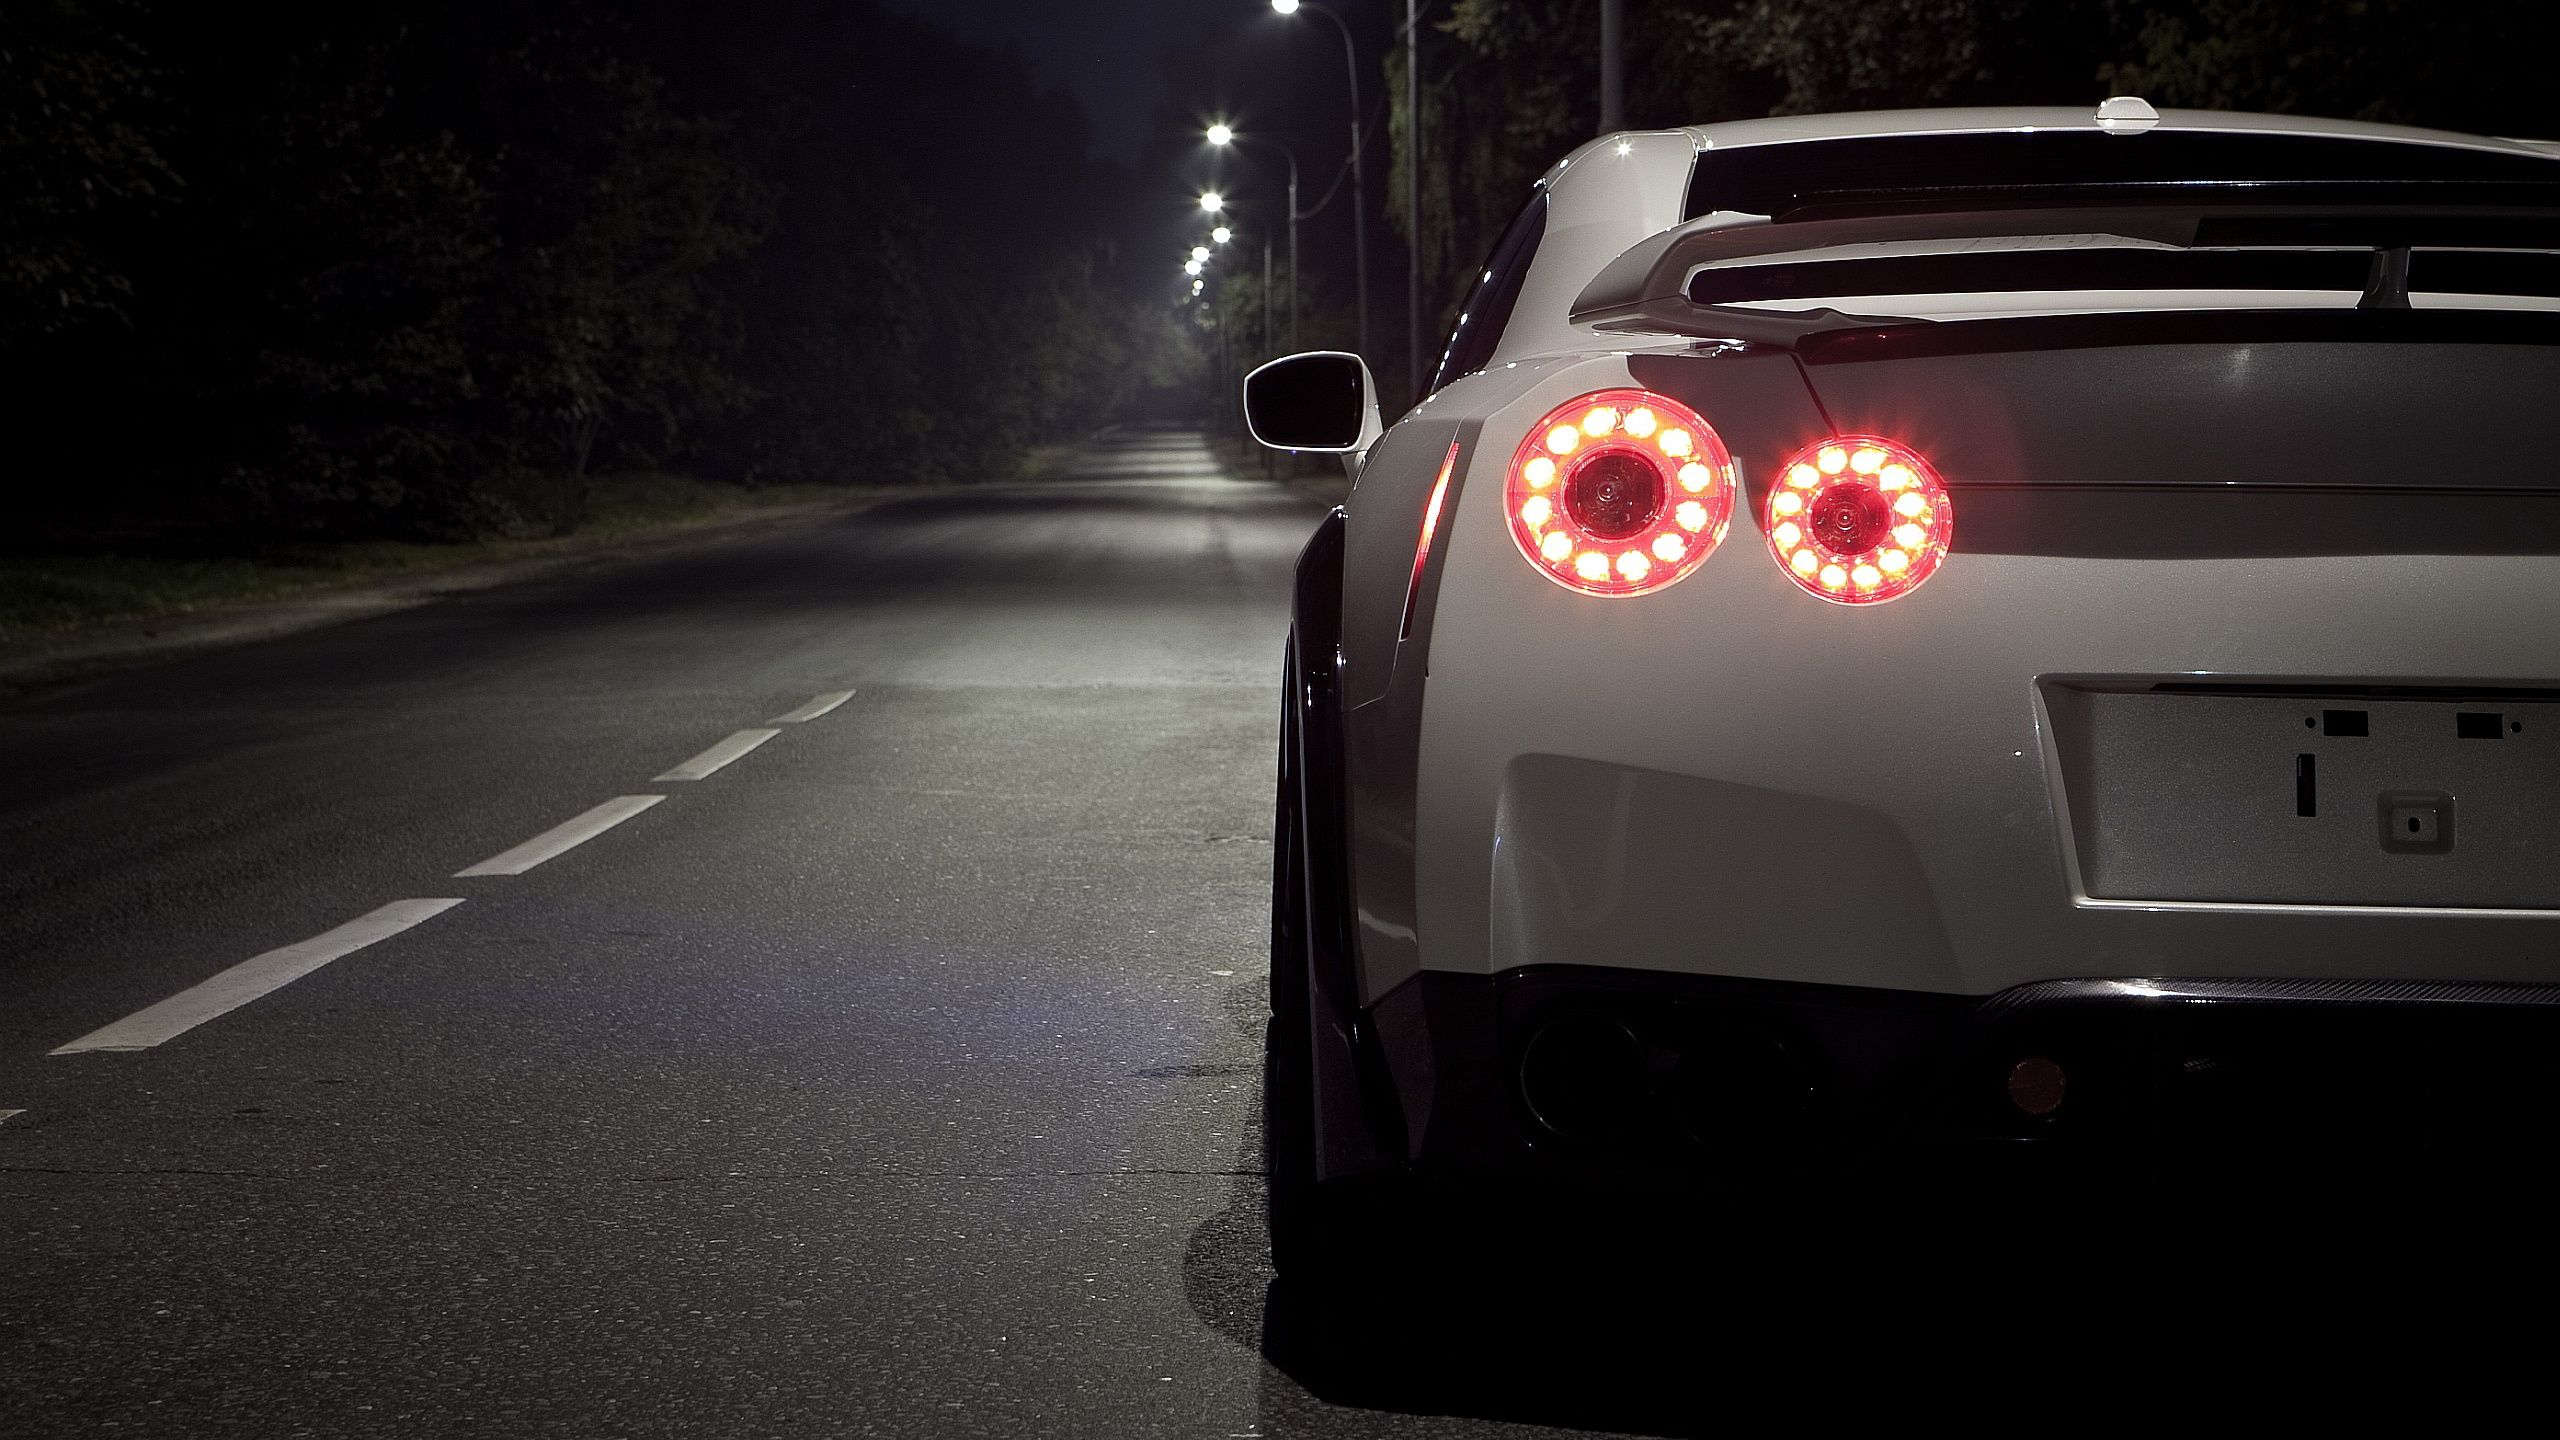 2560x1440 Nissan gtr r35 Wallpaper Products in 2019 Nissan gtr 2560x1440